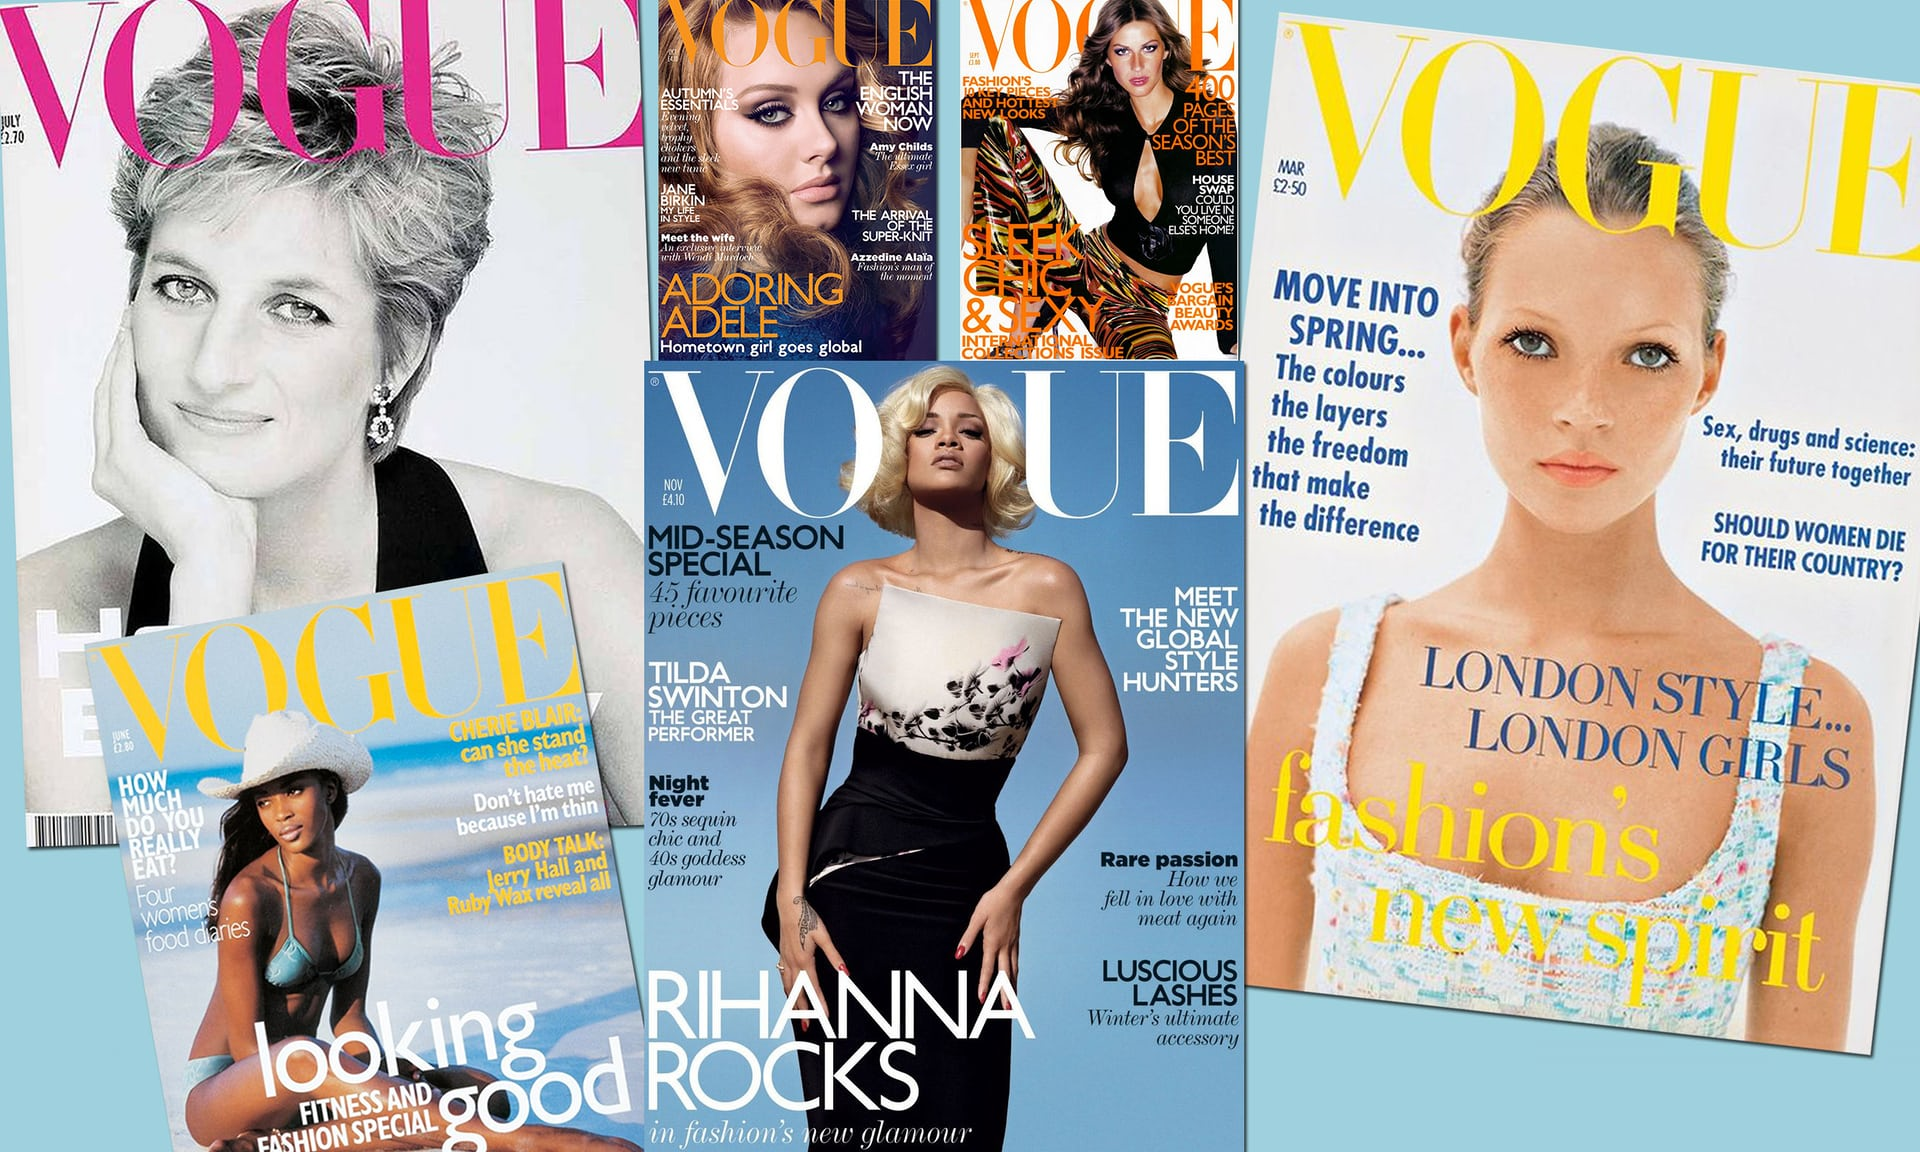 Vogue's 'New Suffragettes': where are the women with disabilities?